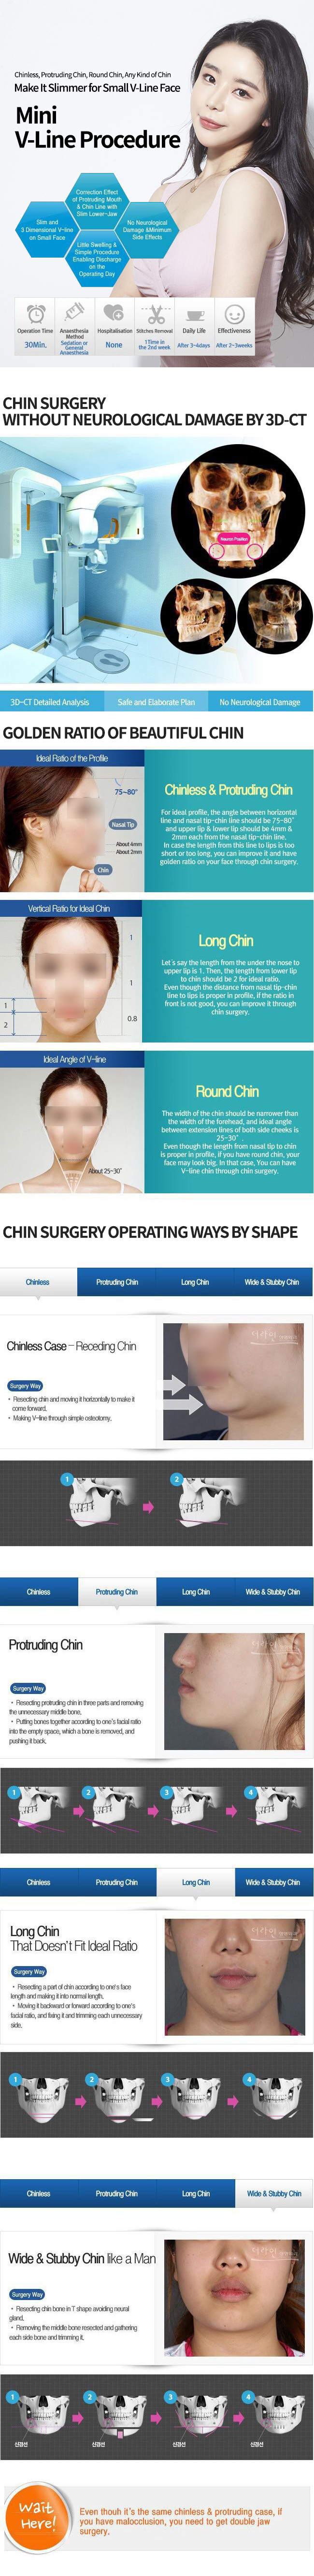 Chin Reduction & Implant Surgery (Before And After)